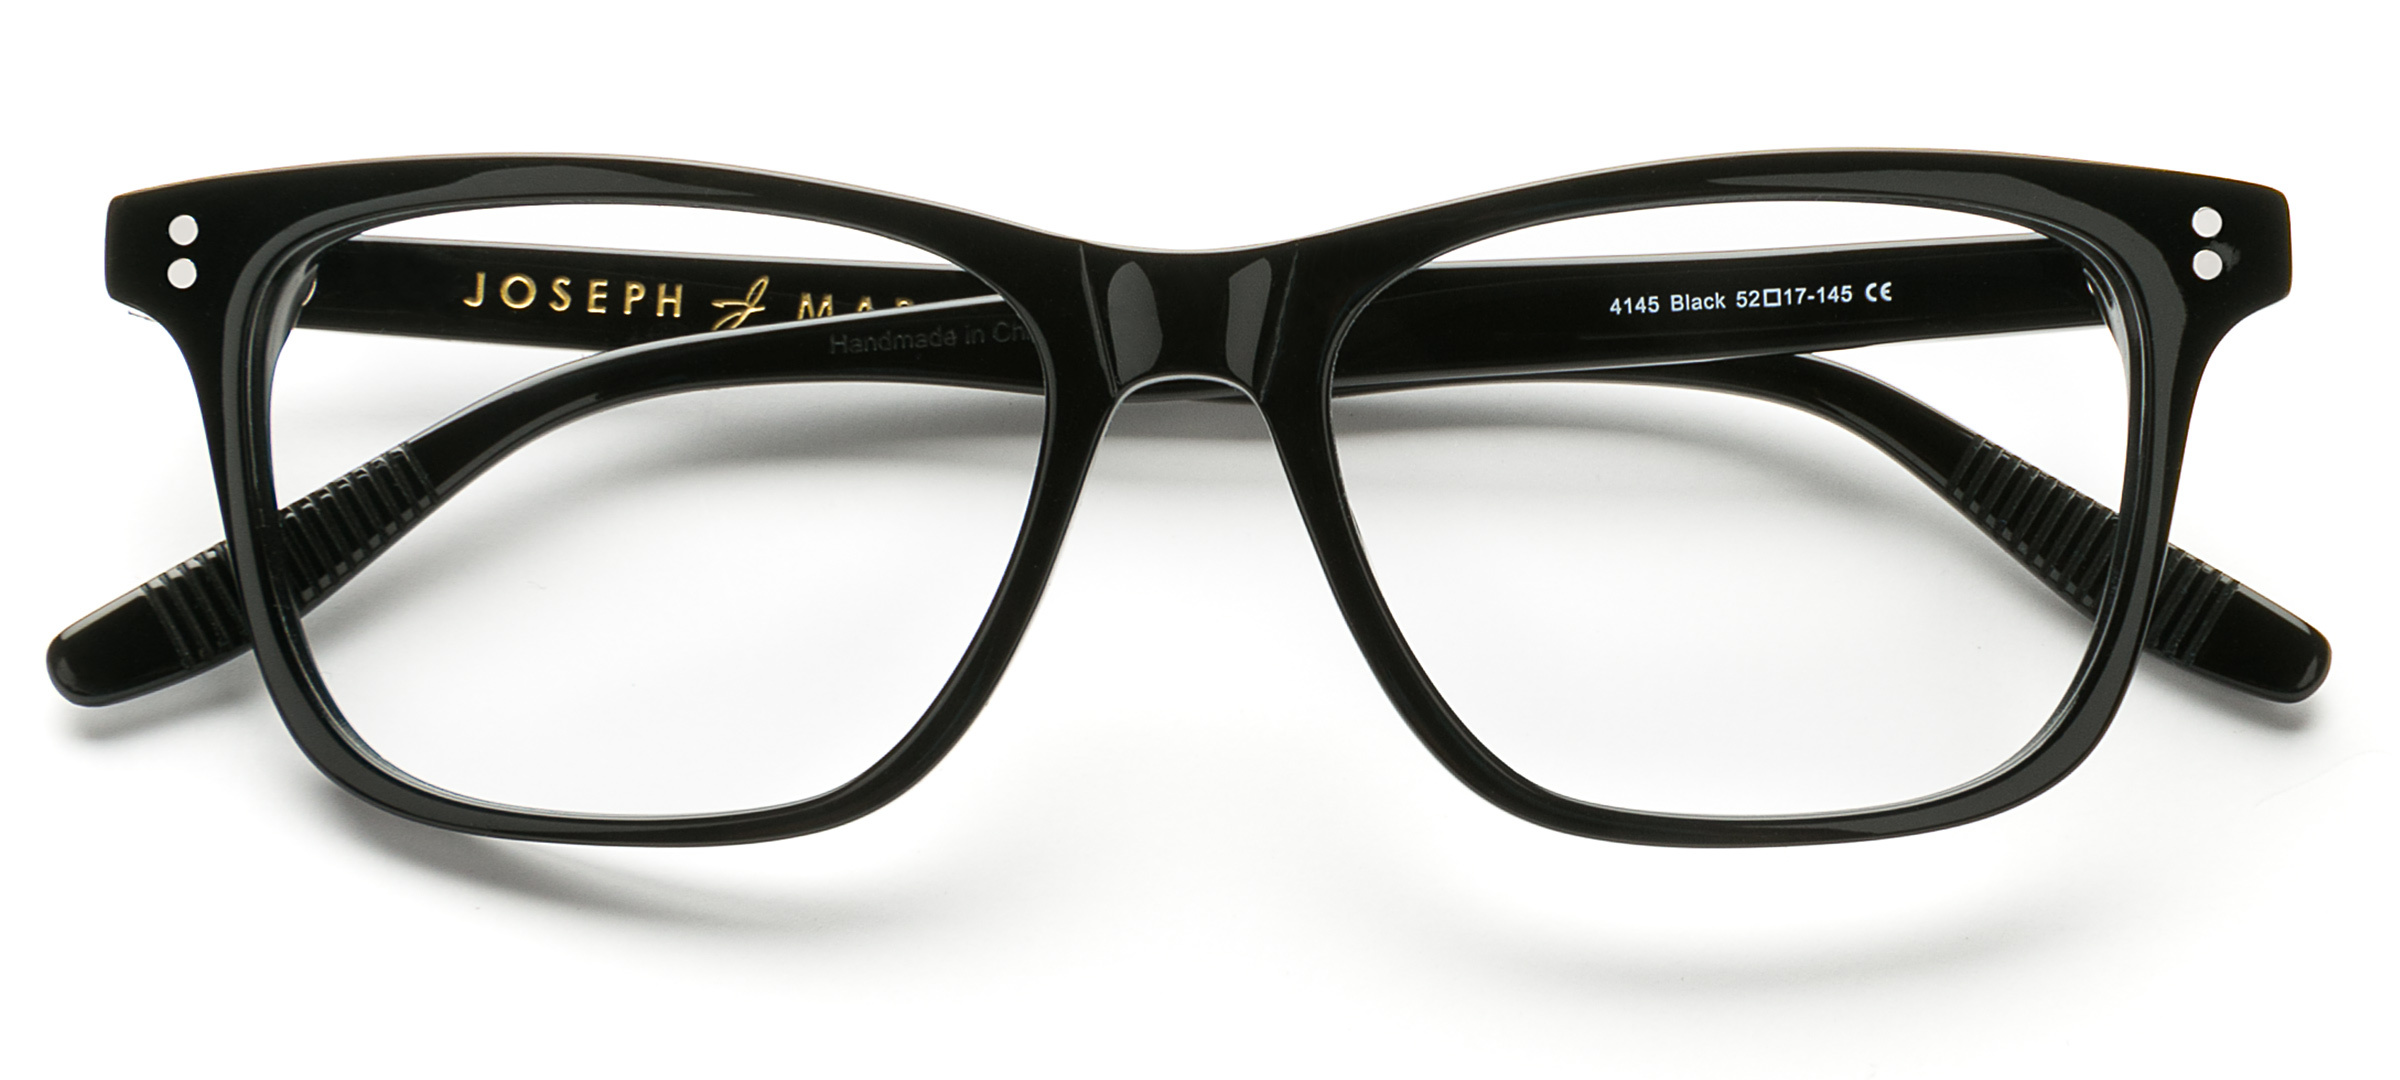 Eyeglass Frames On My Photo : Prescription Glasses Online - Eyeglasses & Frames from USD35 ...